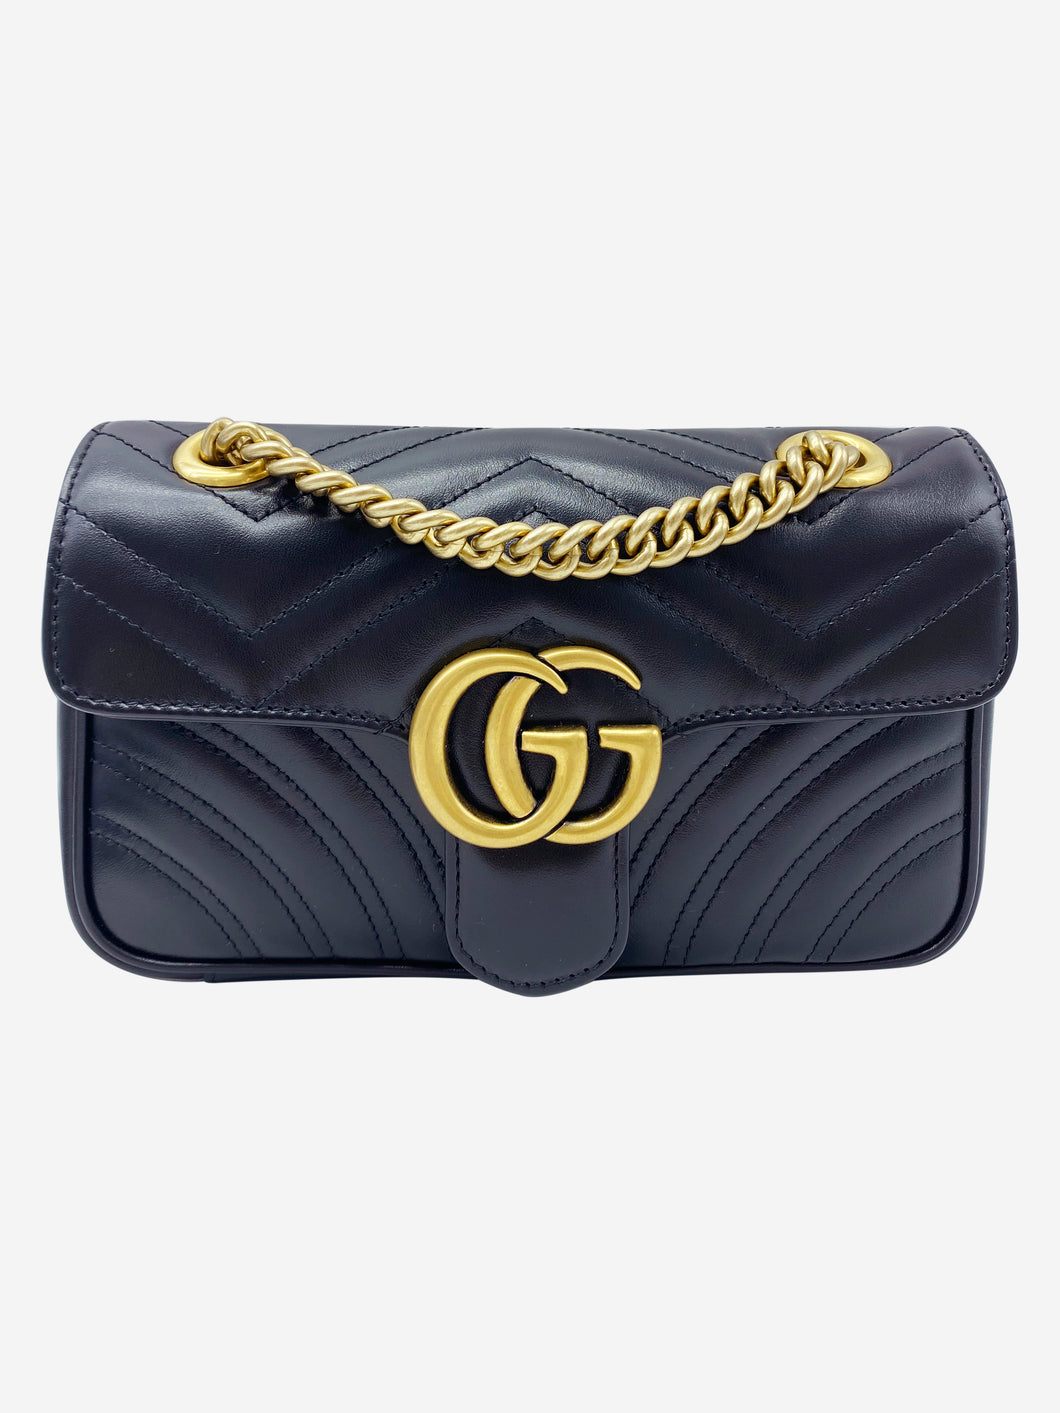 Black GG Marmont small matelassé shoulder bag with heart